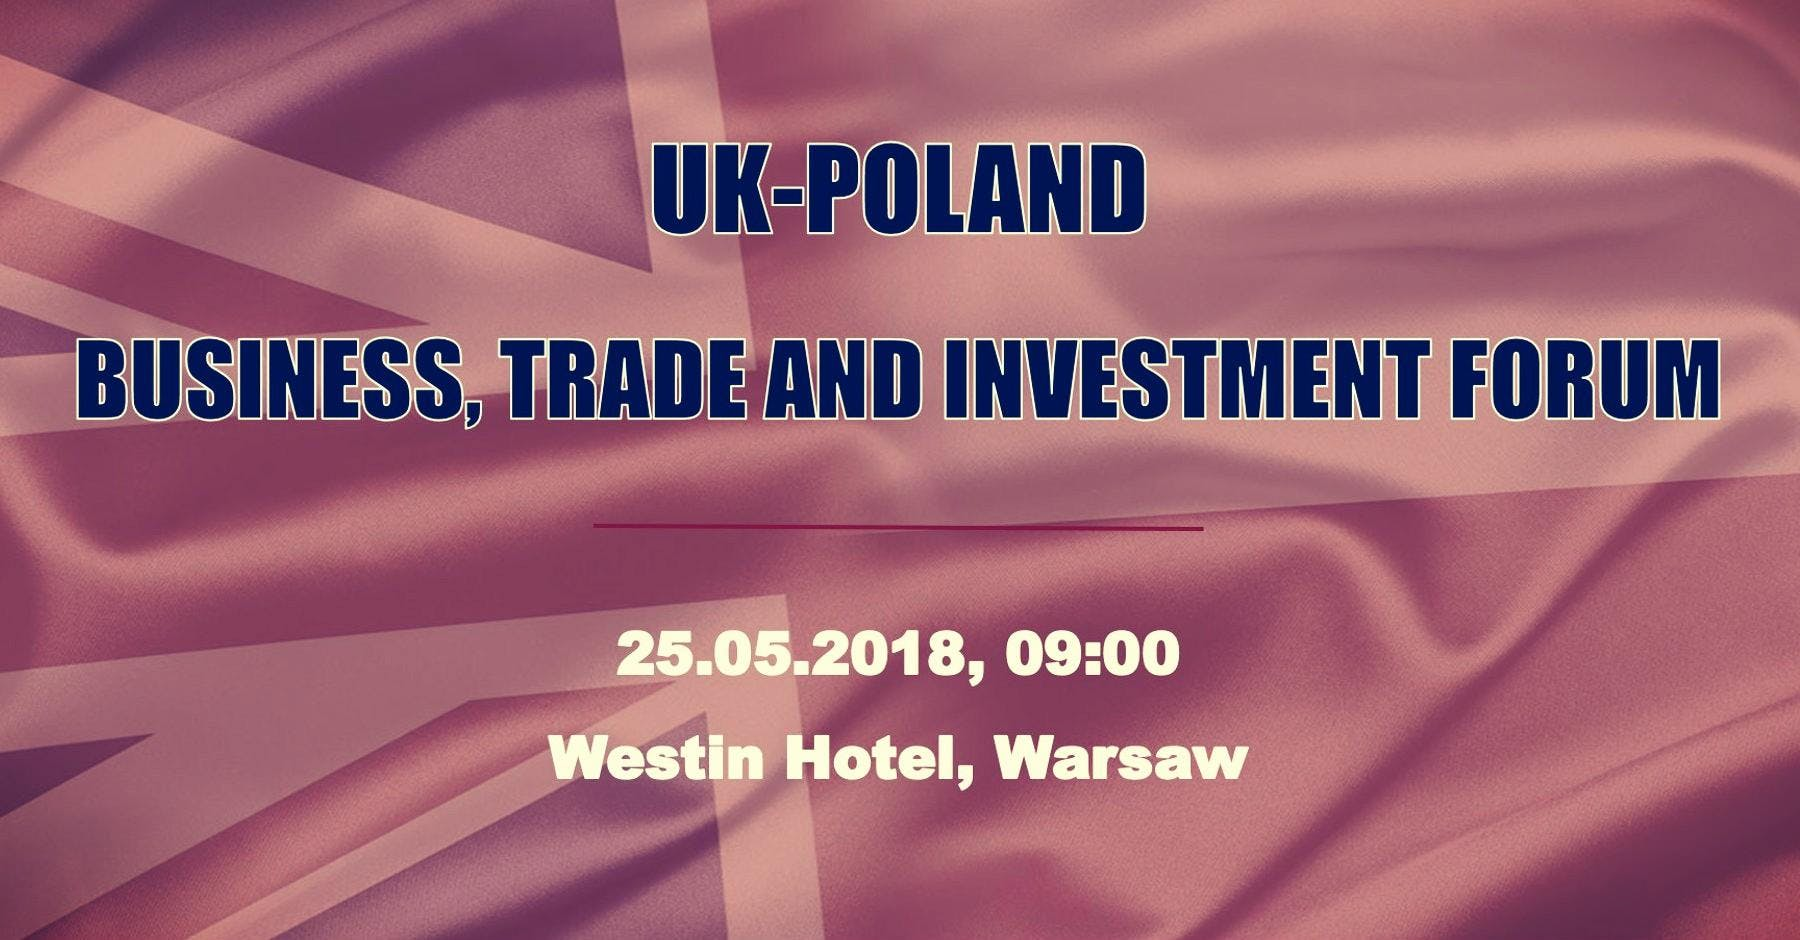 UK-Poland Business, Trade and Investment Forum 2018